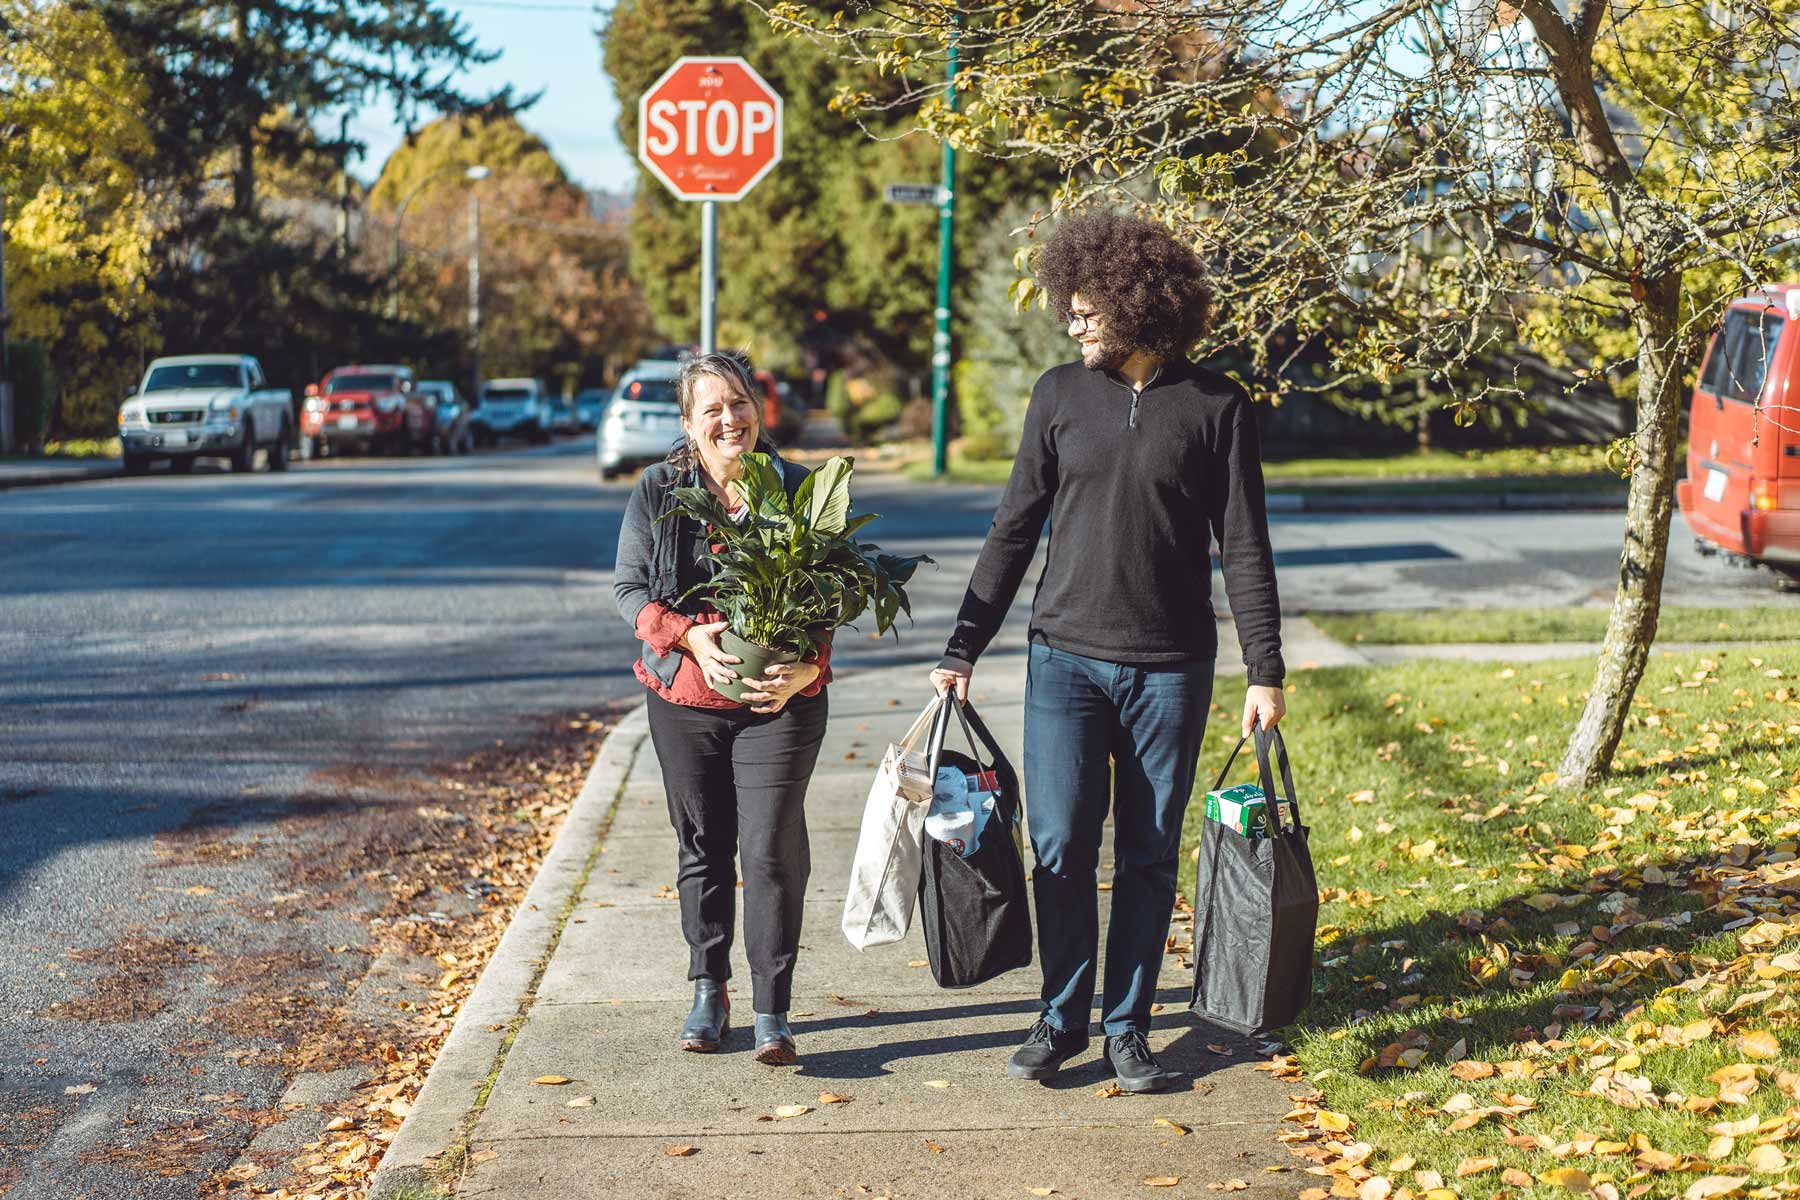 Two people walking on a sidewalk. One is carrying grocery bags, the other is carrying a potted plant.